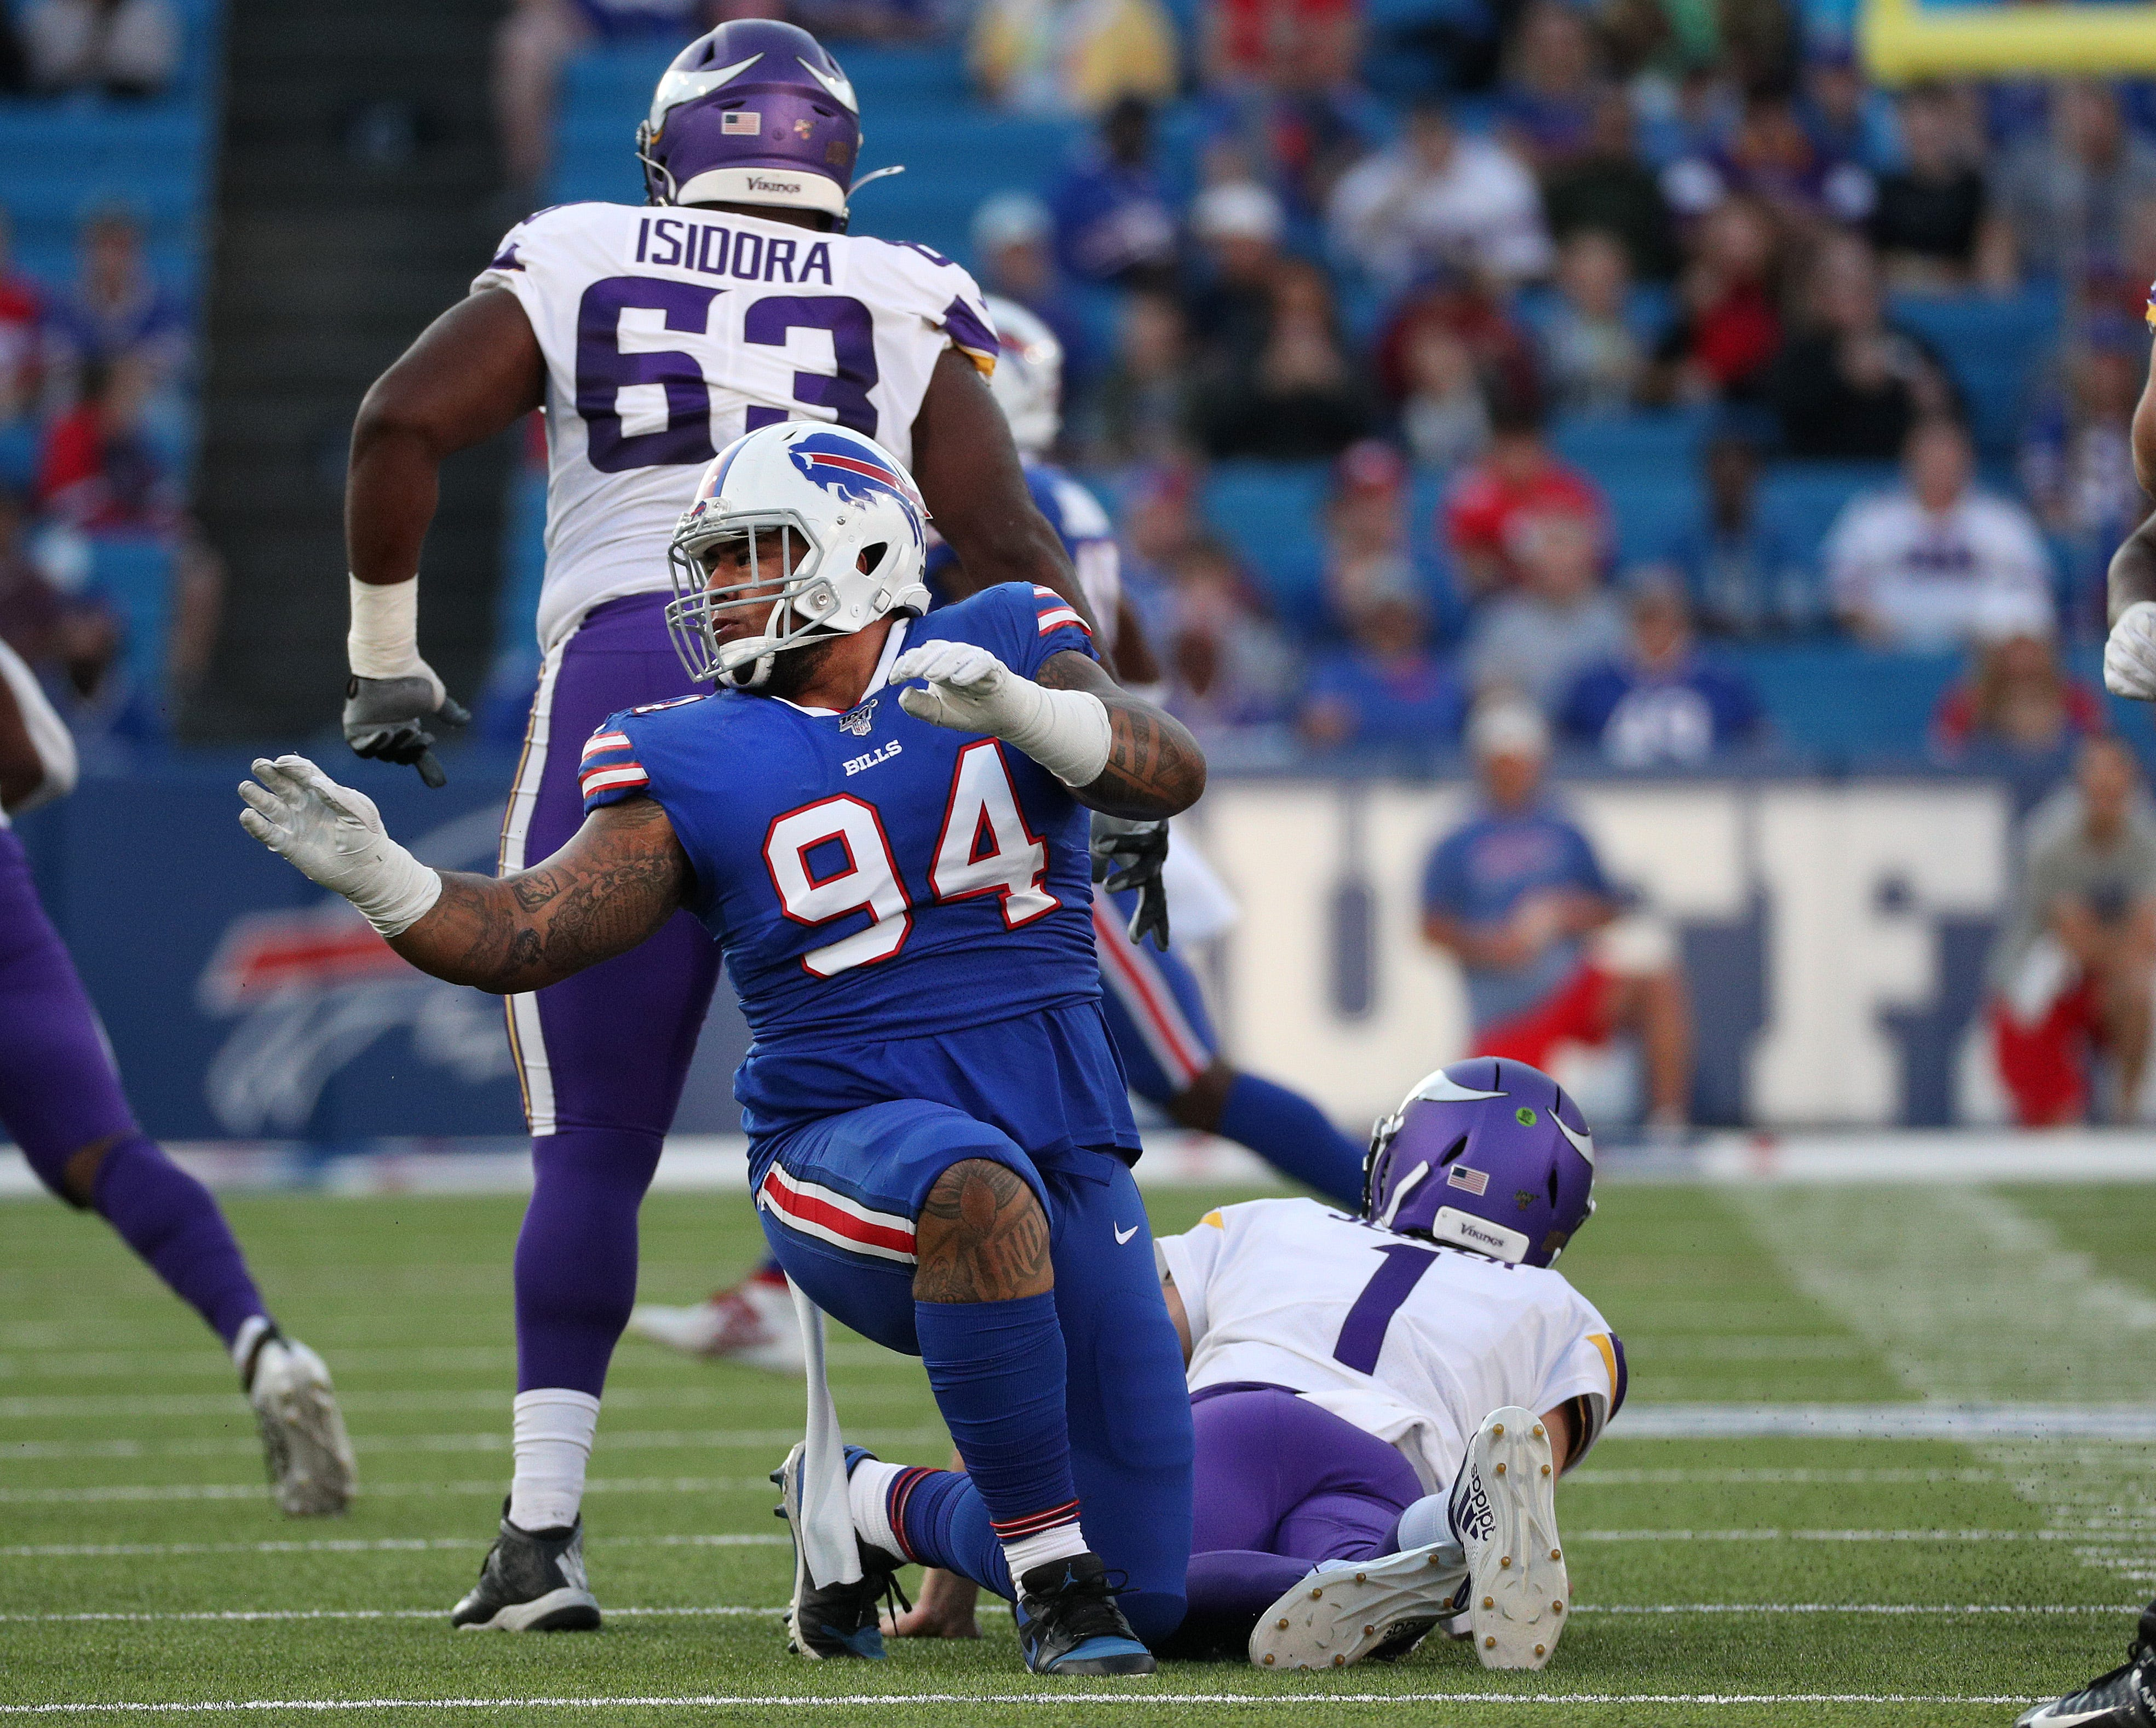 photograph about Buffalo Bills Schedule Printable named Rochester athletics information, rankings, photographs, motion pictures - Democrat and